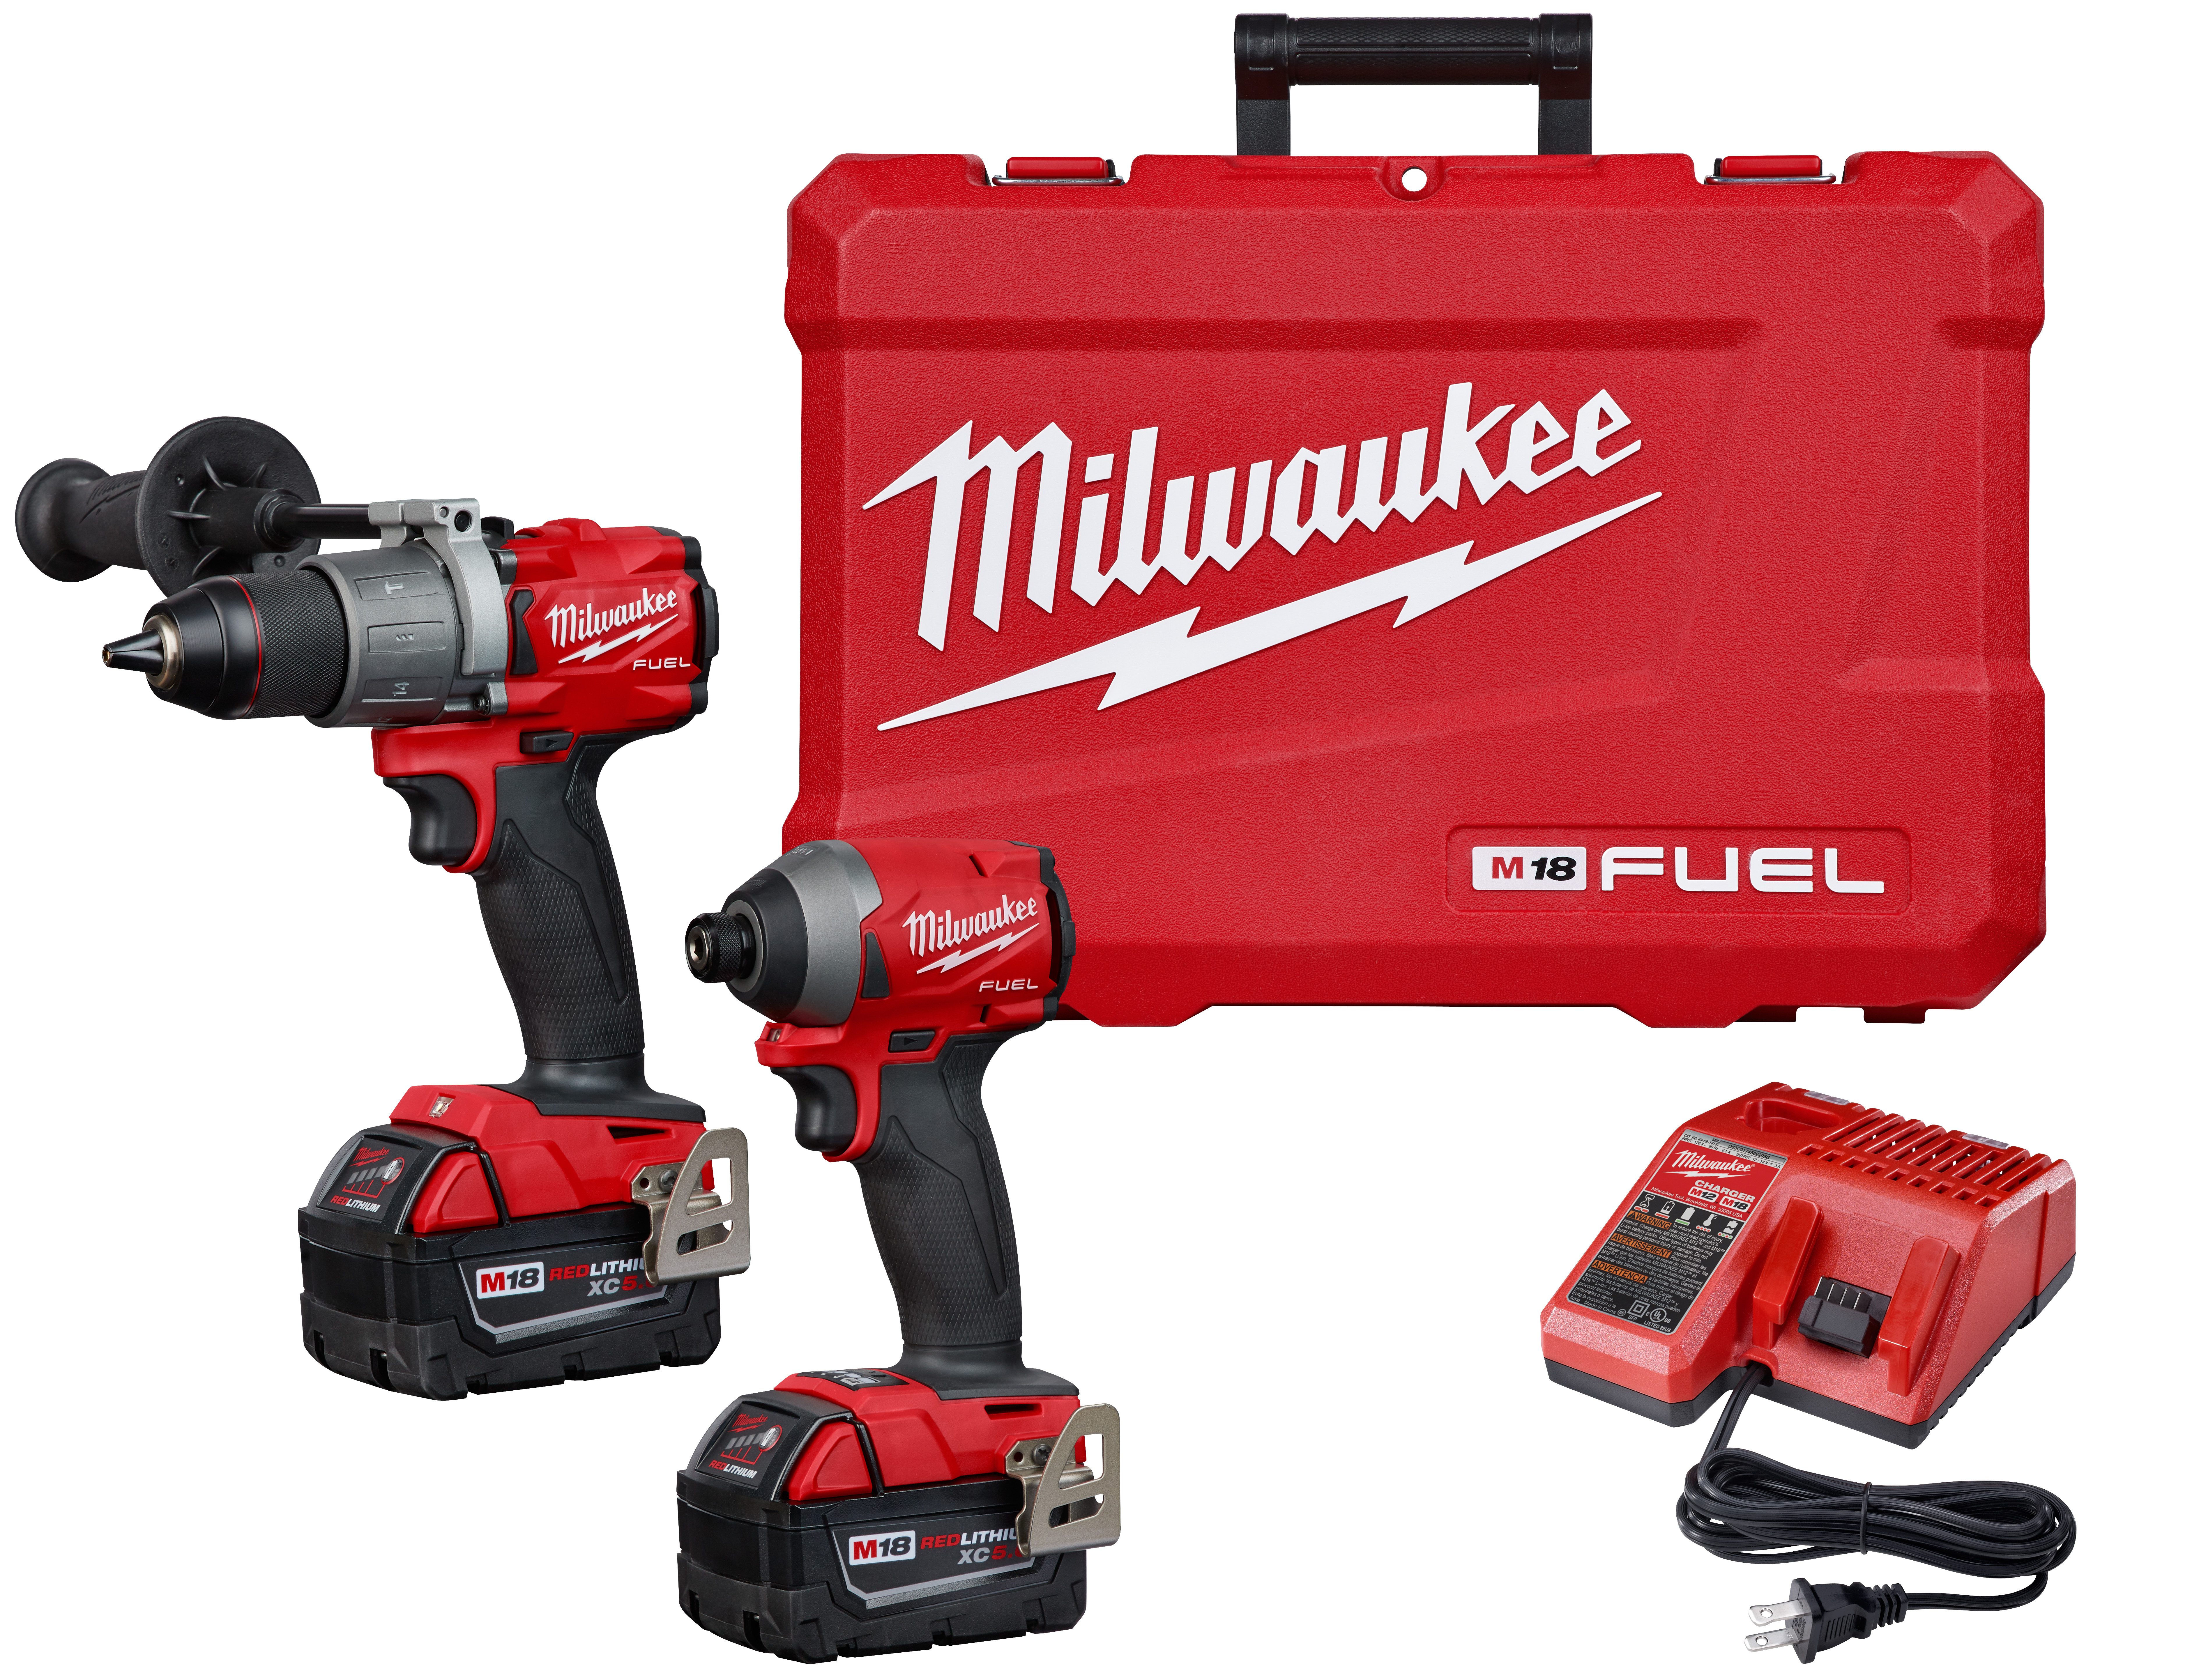 Milwaukee® M18™ 2997-22 2-Tool Cordless Combination Kit, Tools: Hammer Drill, Impact Driver, 18 VDC, 5 Ah Lithium-Ion REDLITHIUM™ Battery